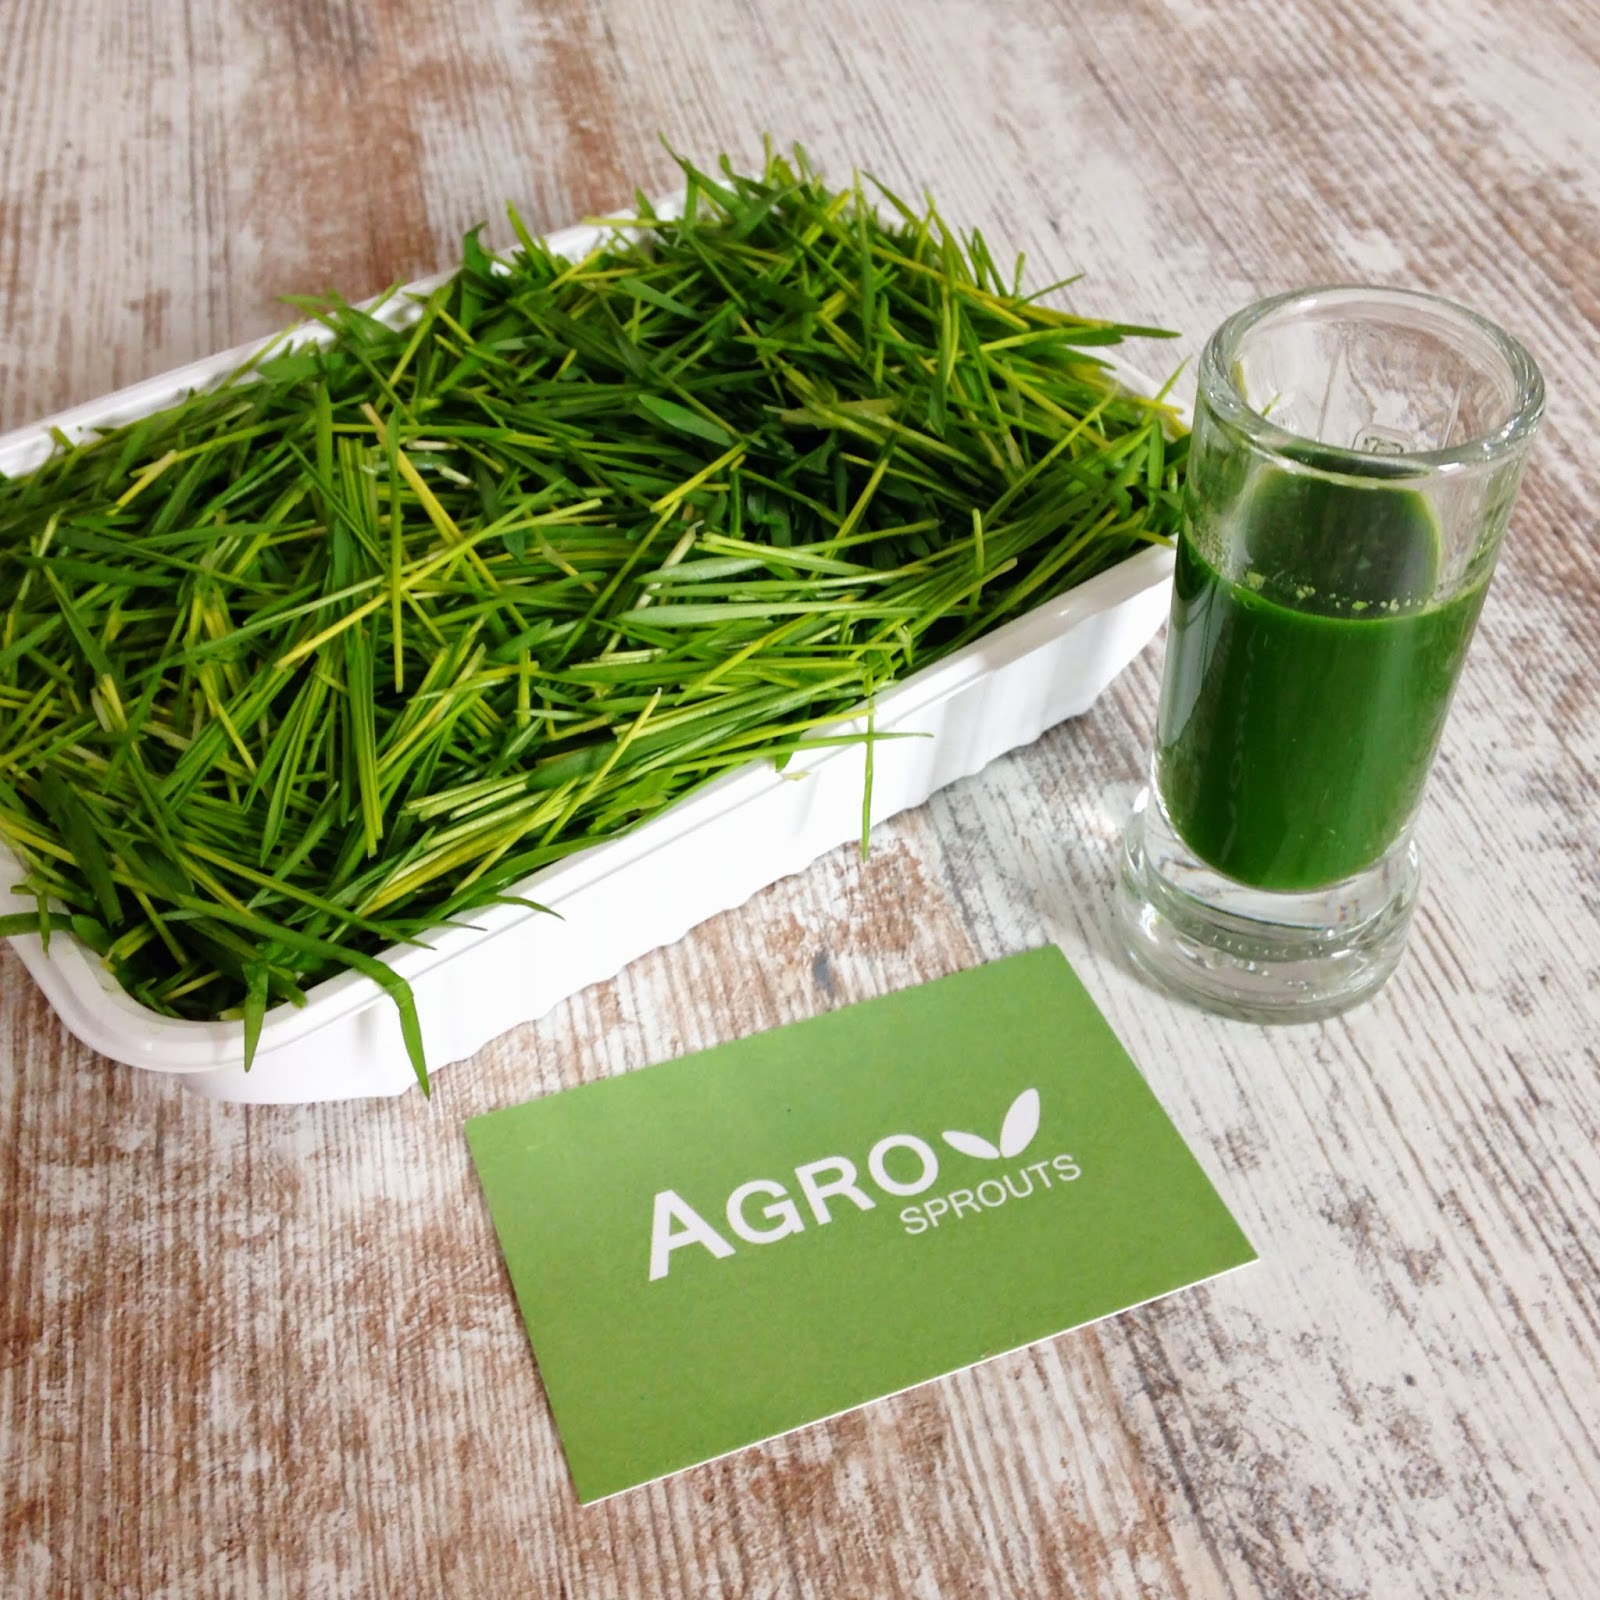 www.agrosprouts.at